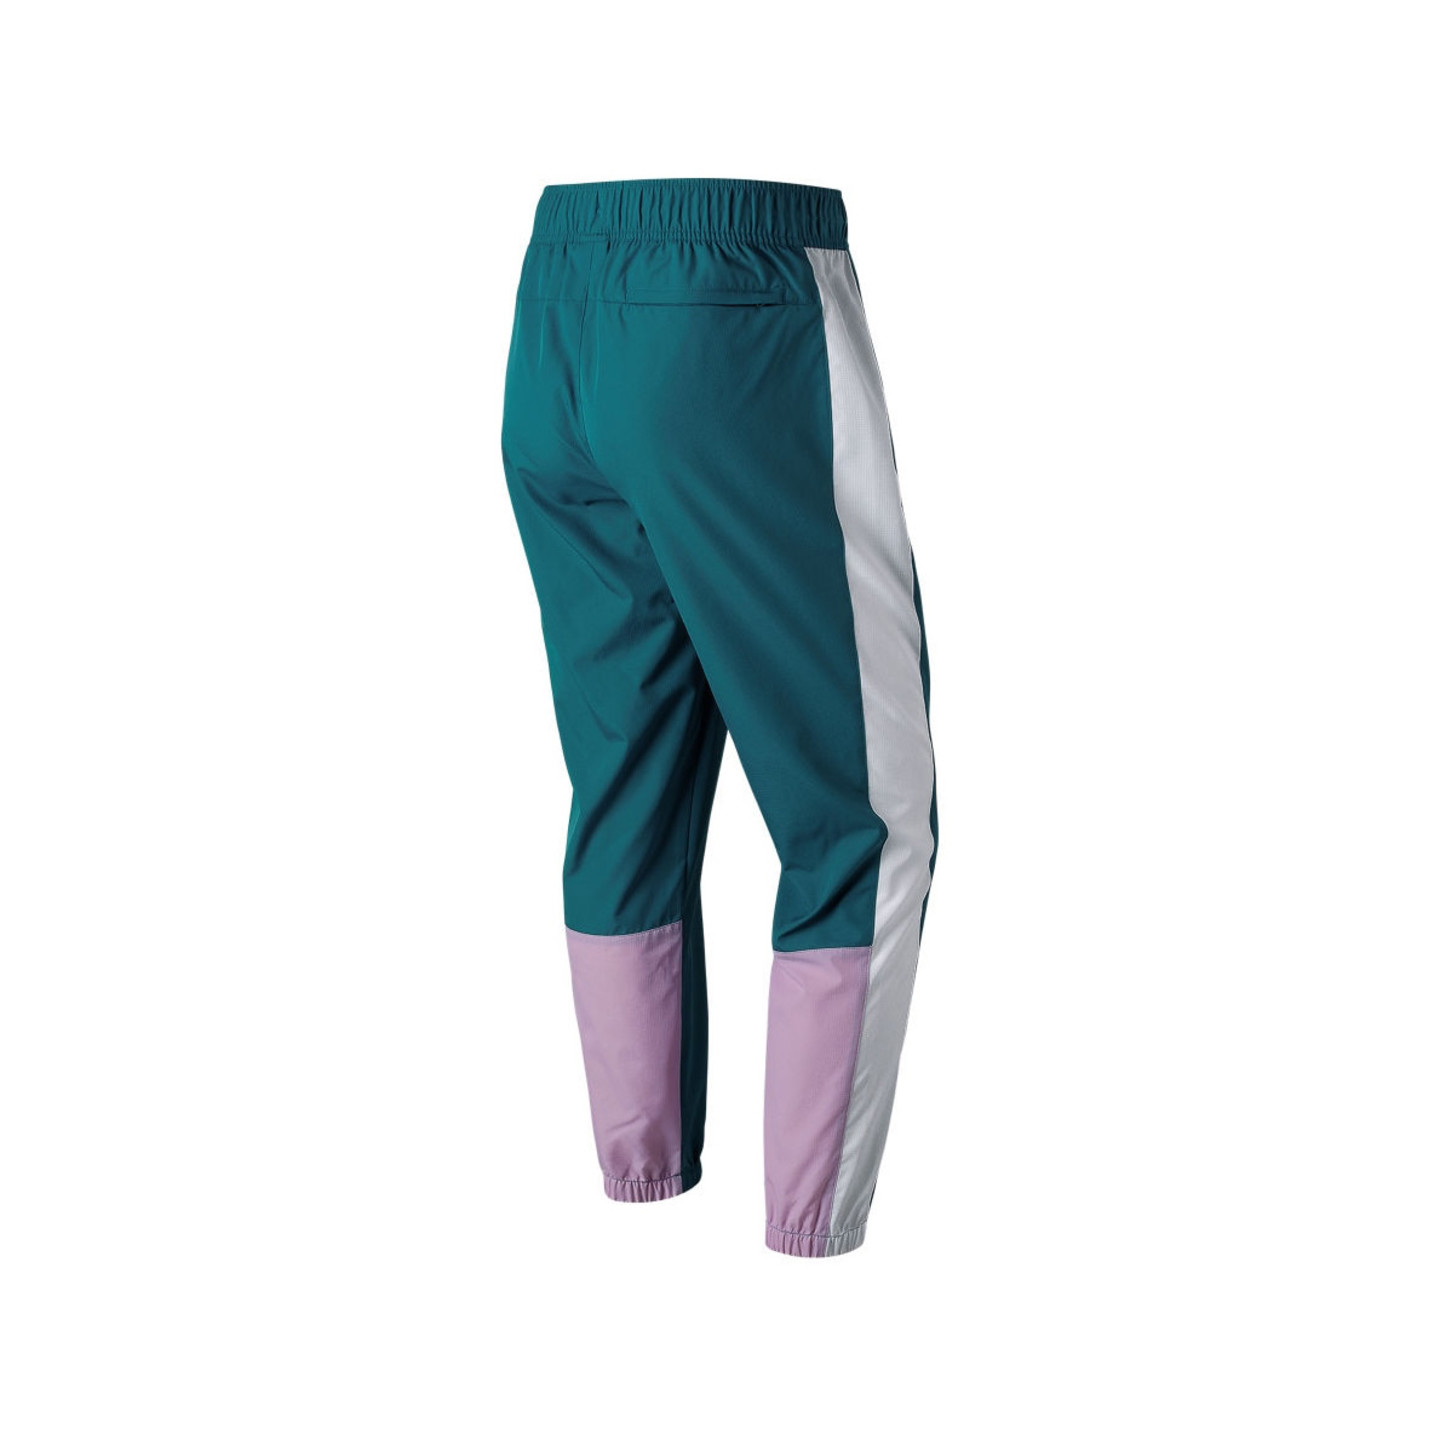 New Balance Windbreaker Pant Dark Neptune / White / Lilac MP91507DNP